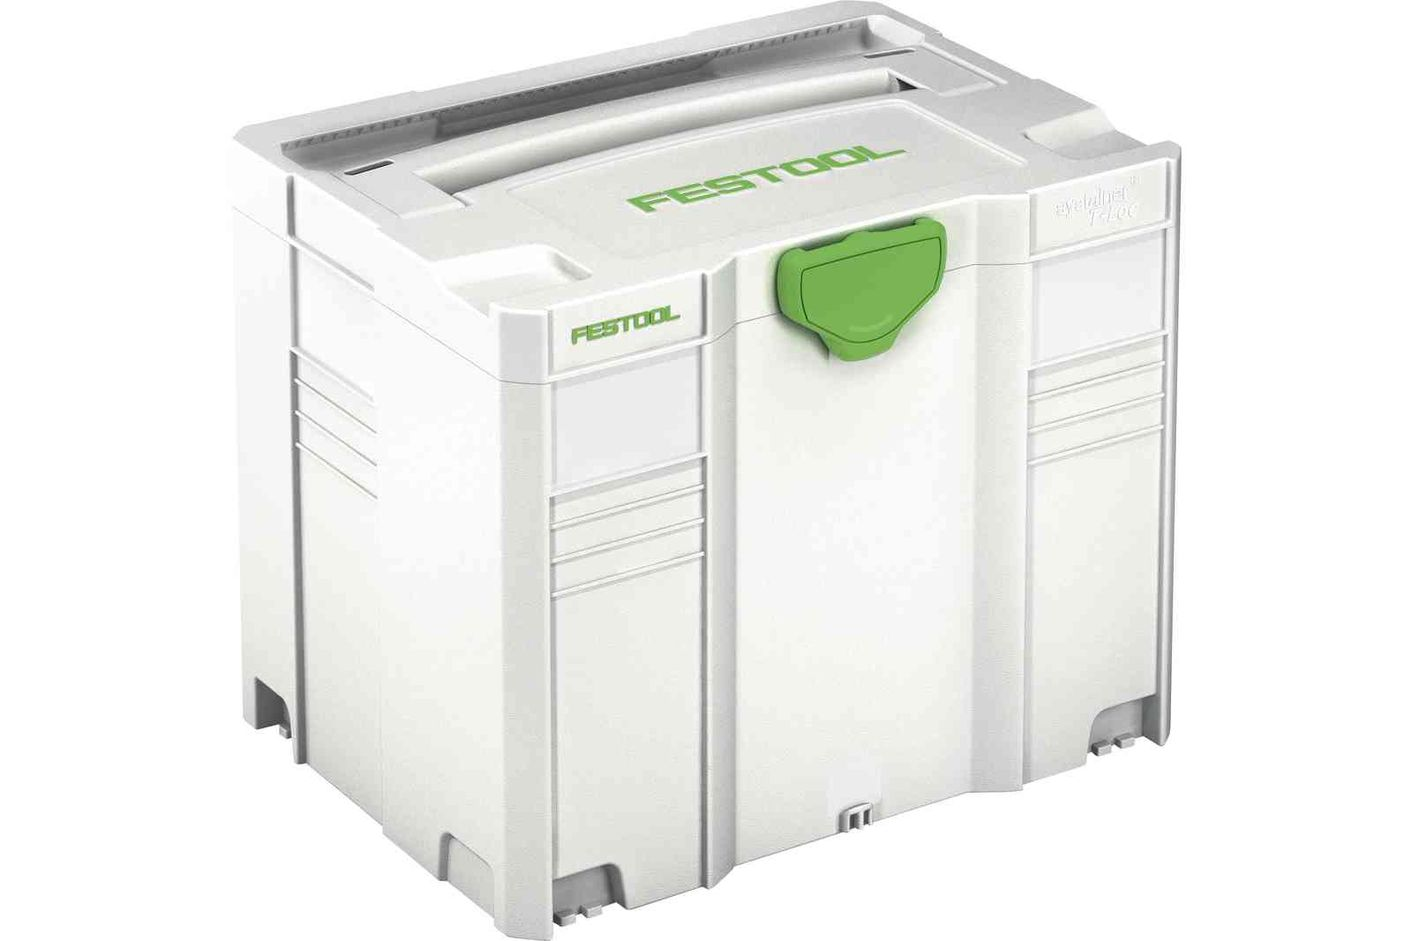 Imagine Festool Systainer T loc Sys 4 Tl